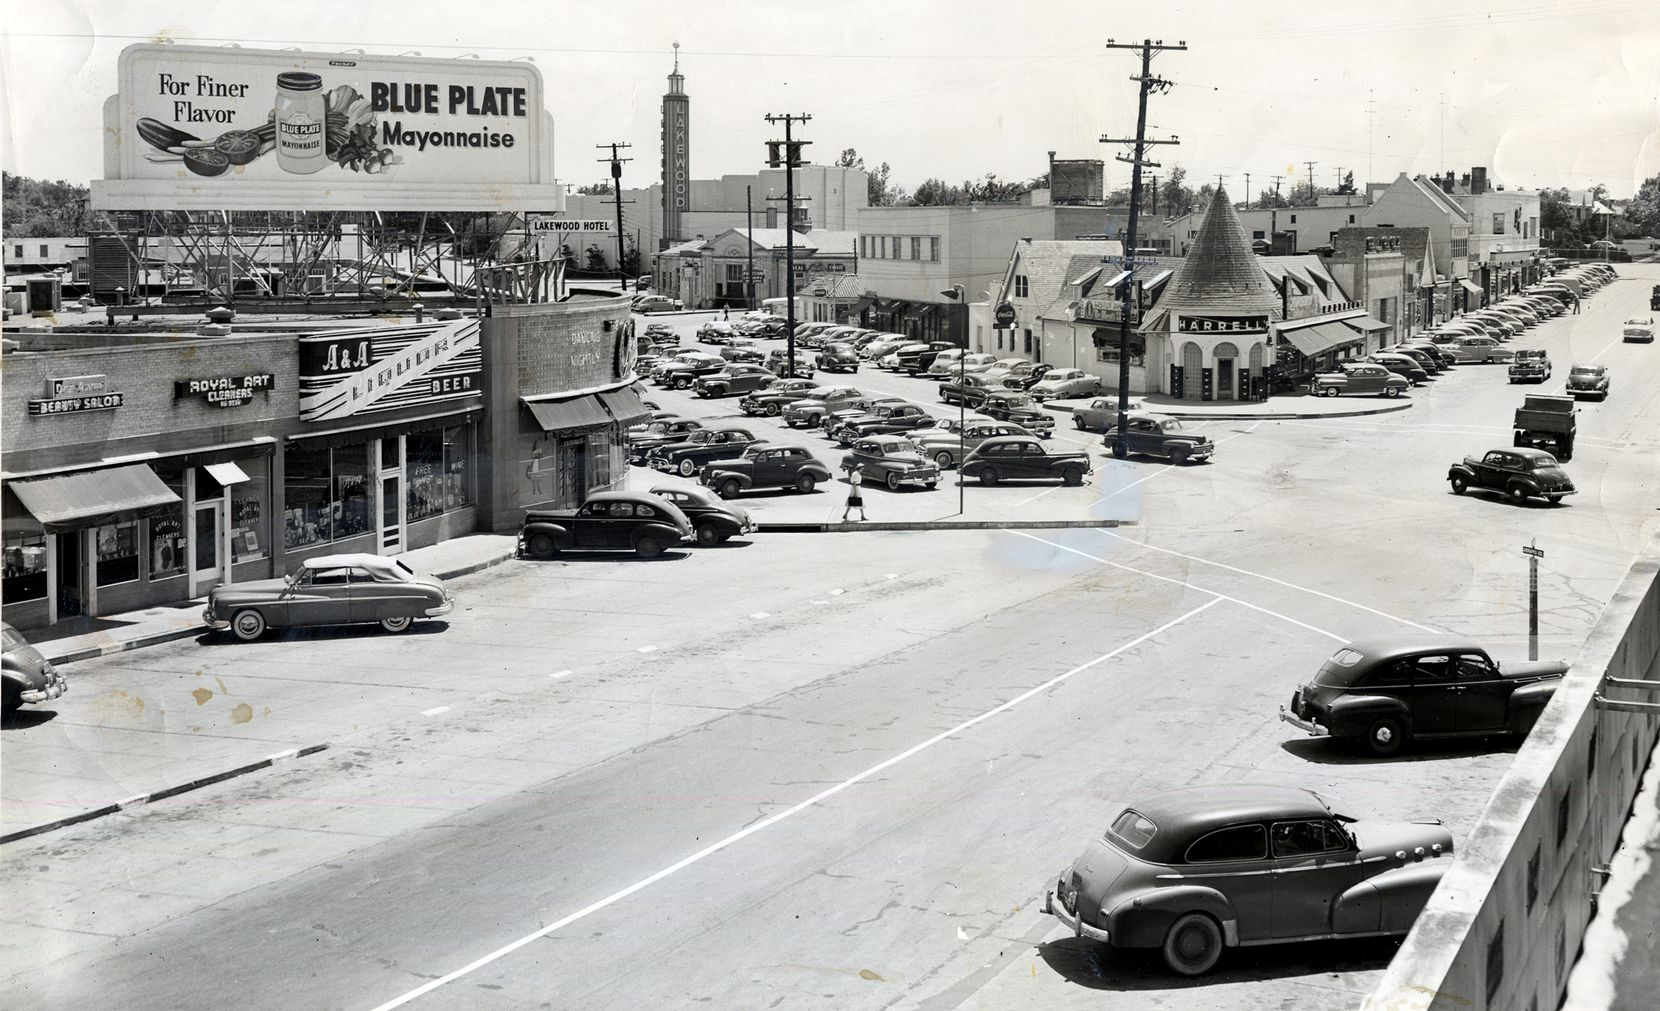 A 1949 photo shows the just sold section of Lakewood shopping center on the left.